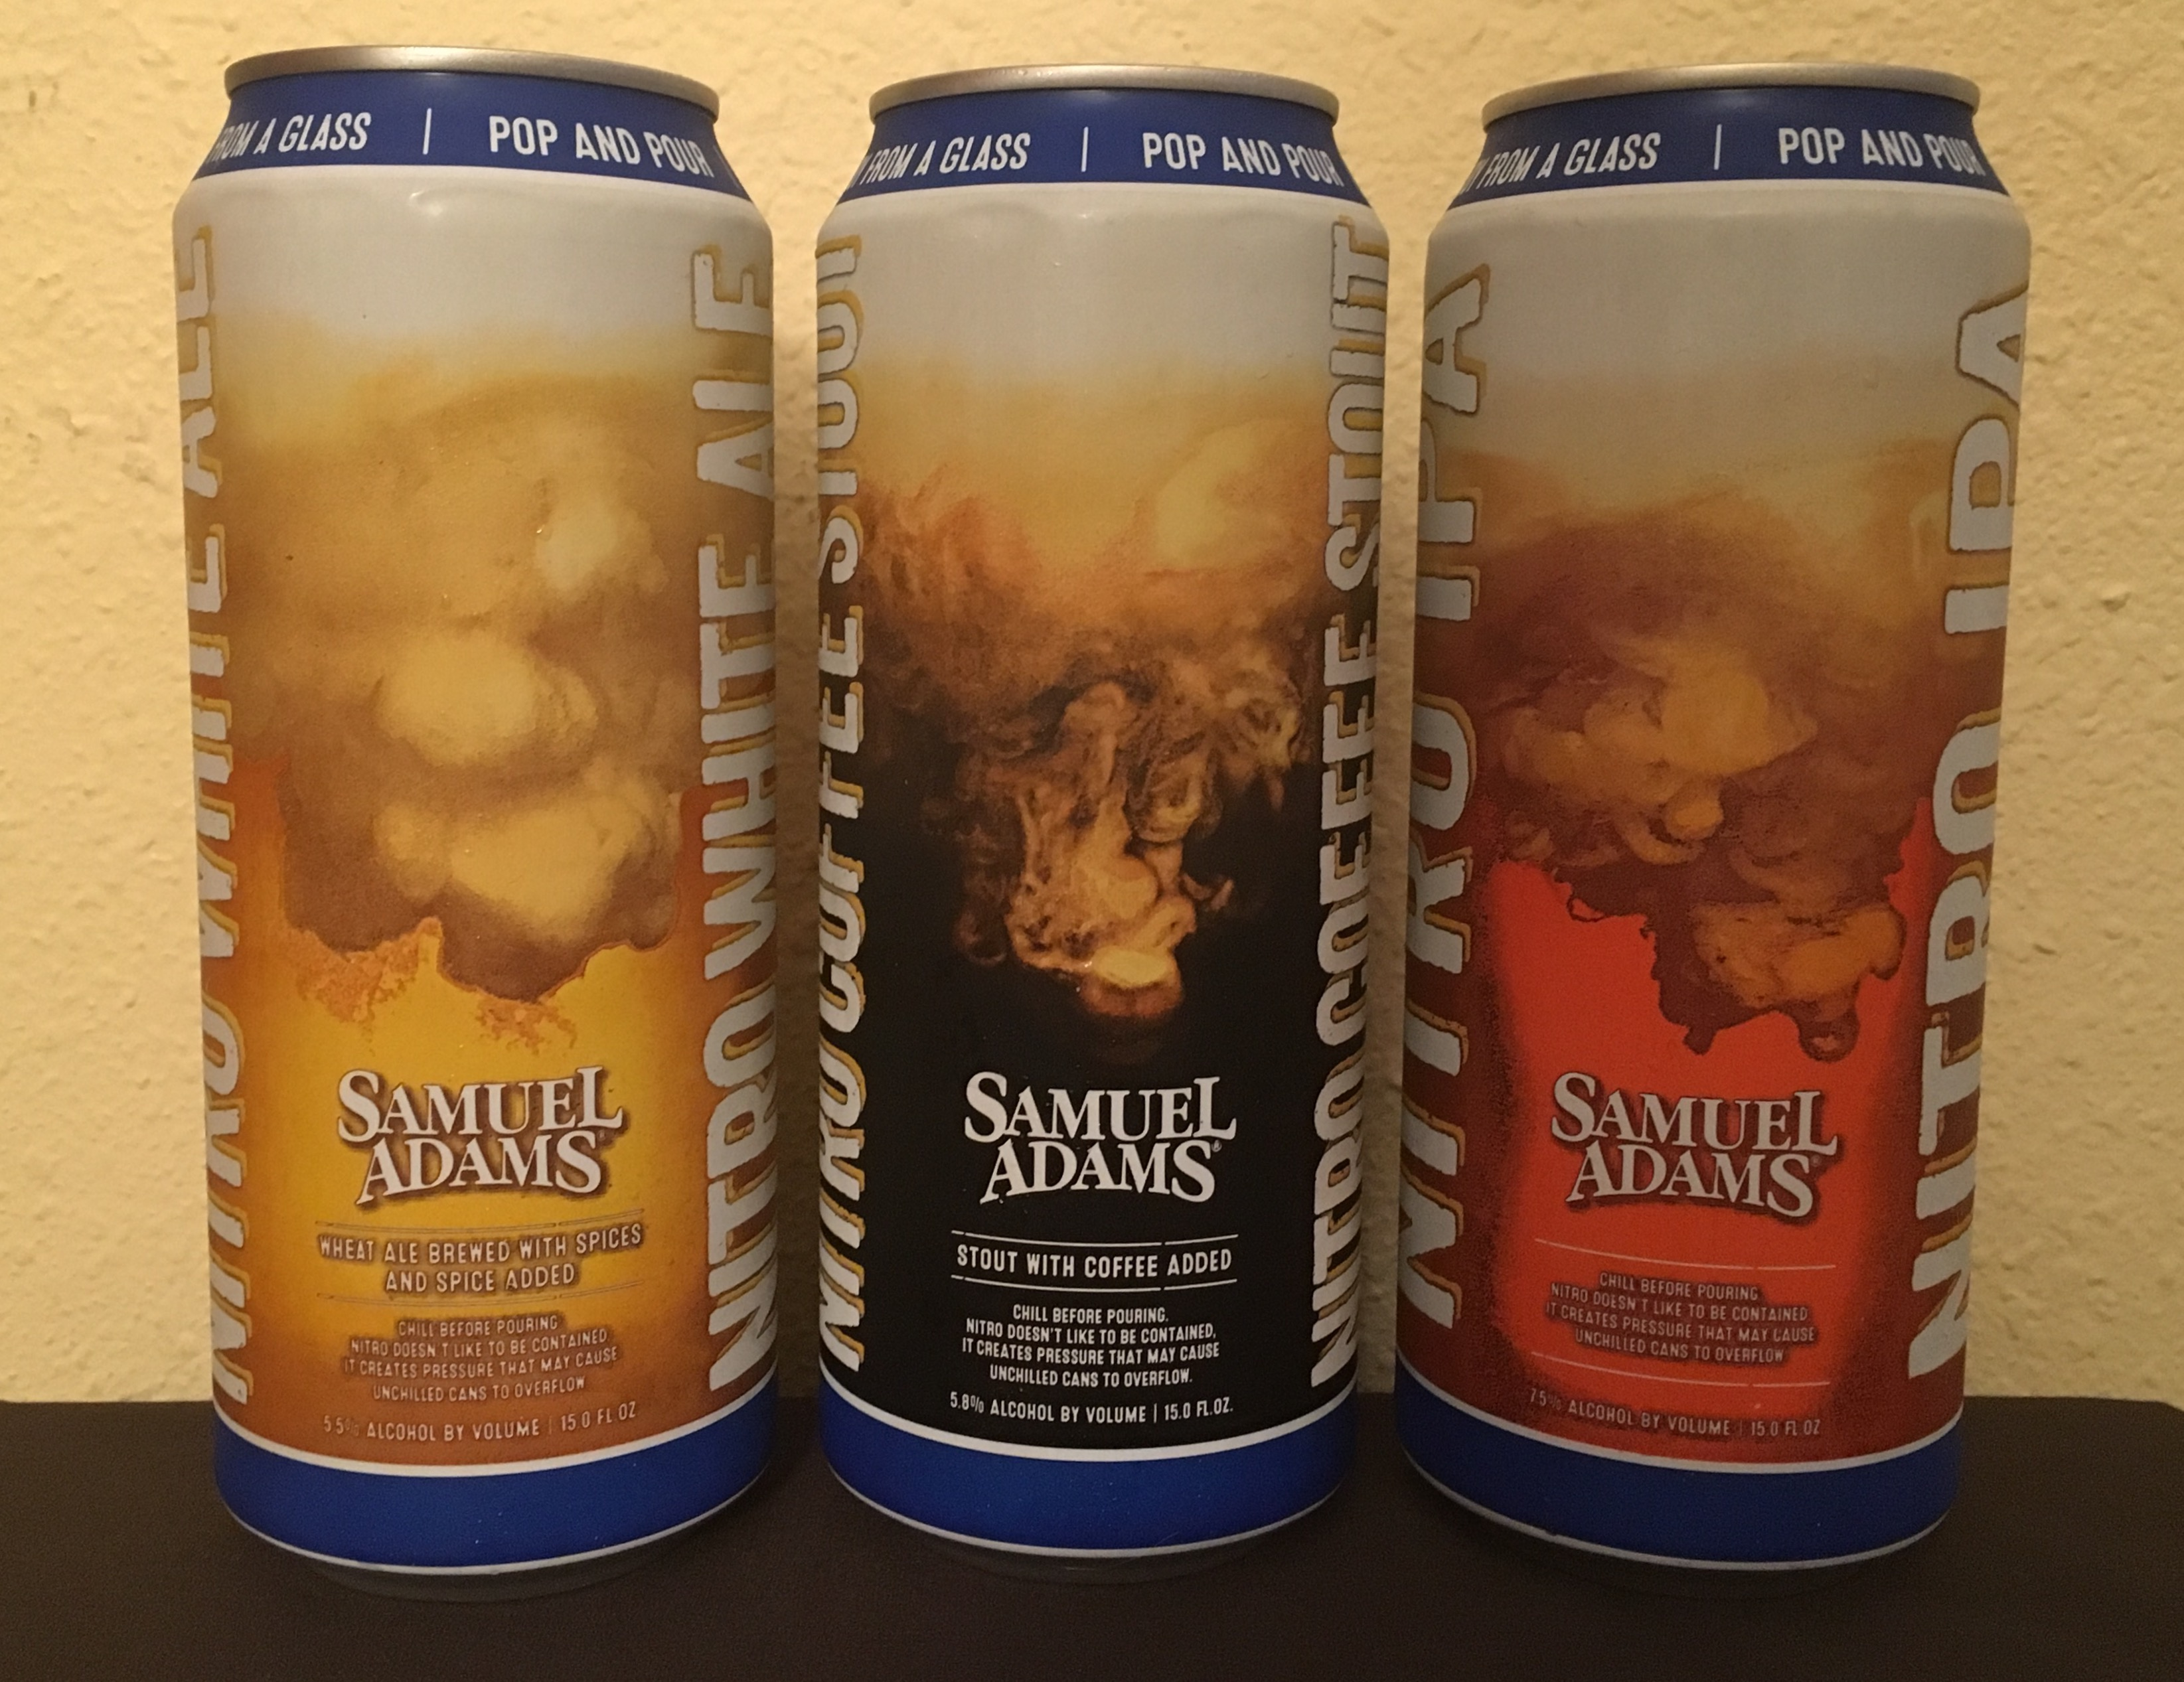 Samuel Adams Nitro Project Lineup of Nitro White Ale, Nitro Coffee Stout and Nitro IPA